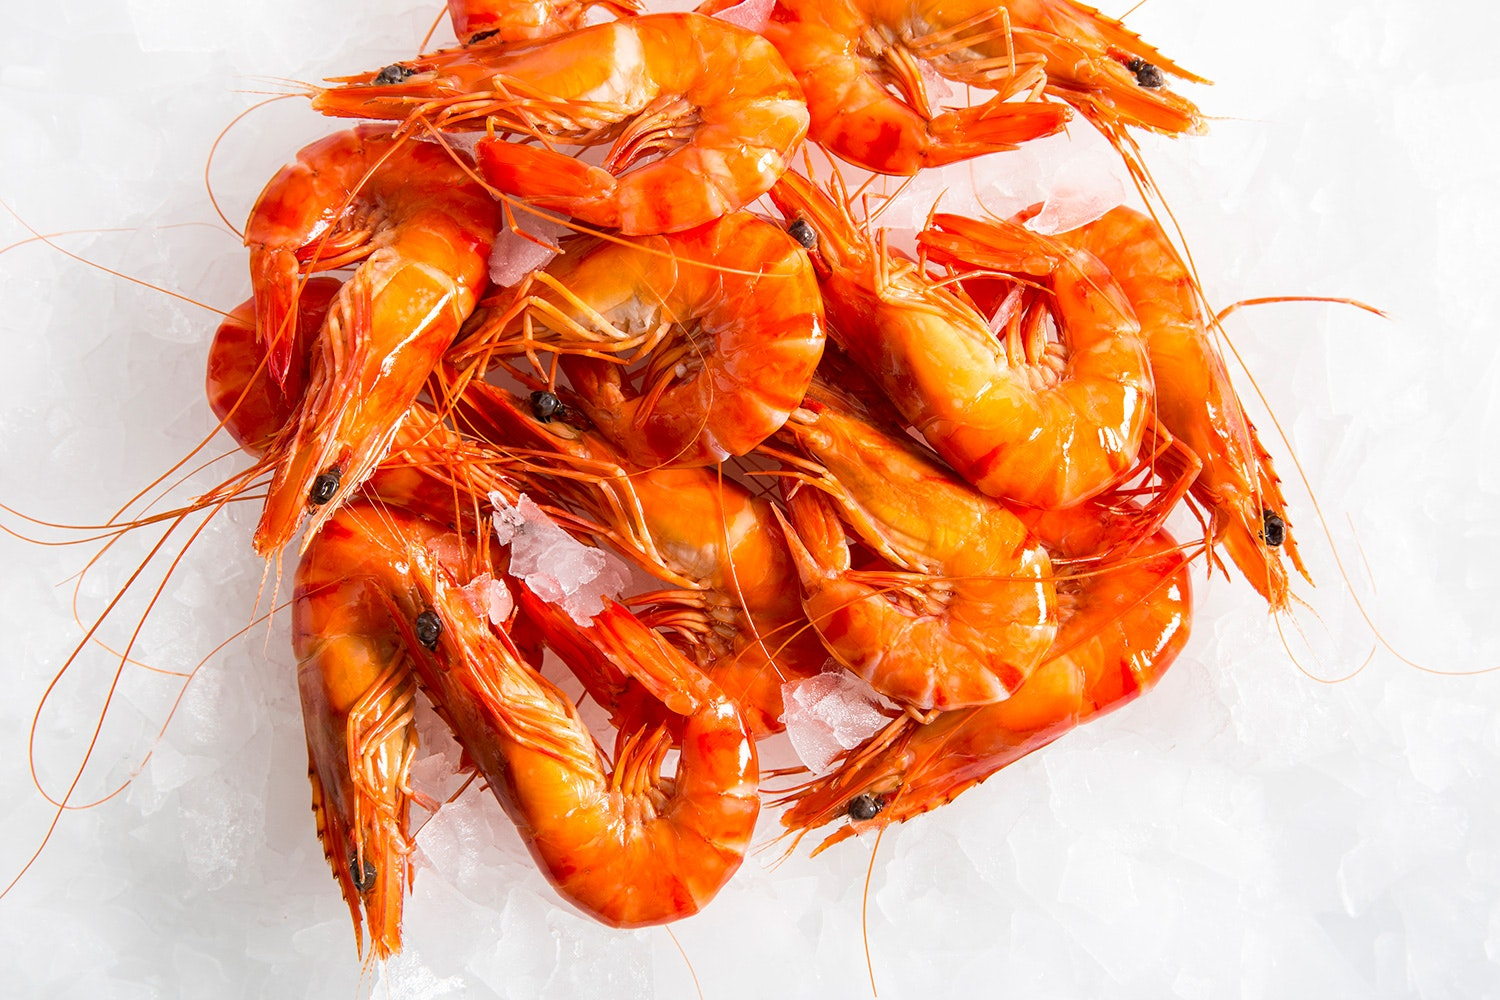 Shrimp with shell